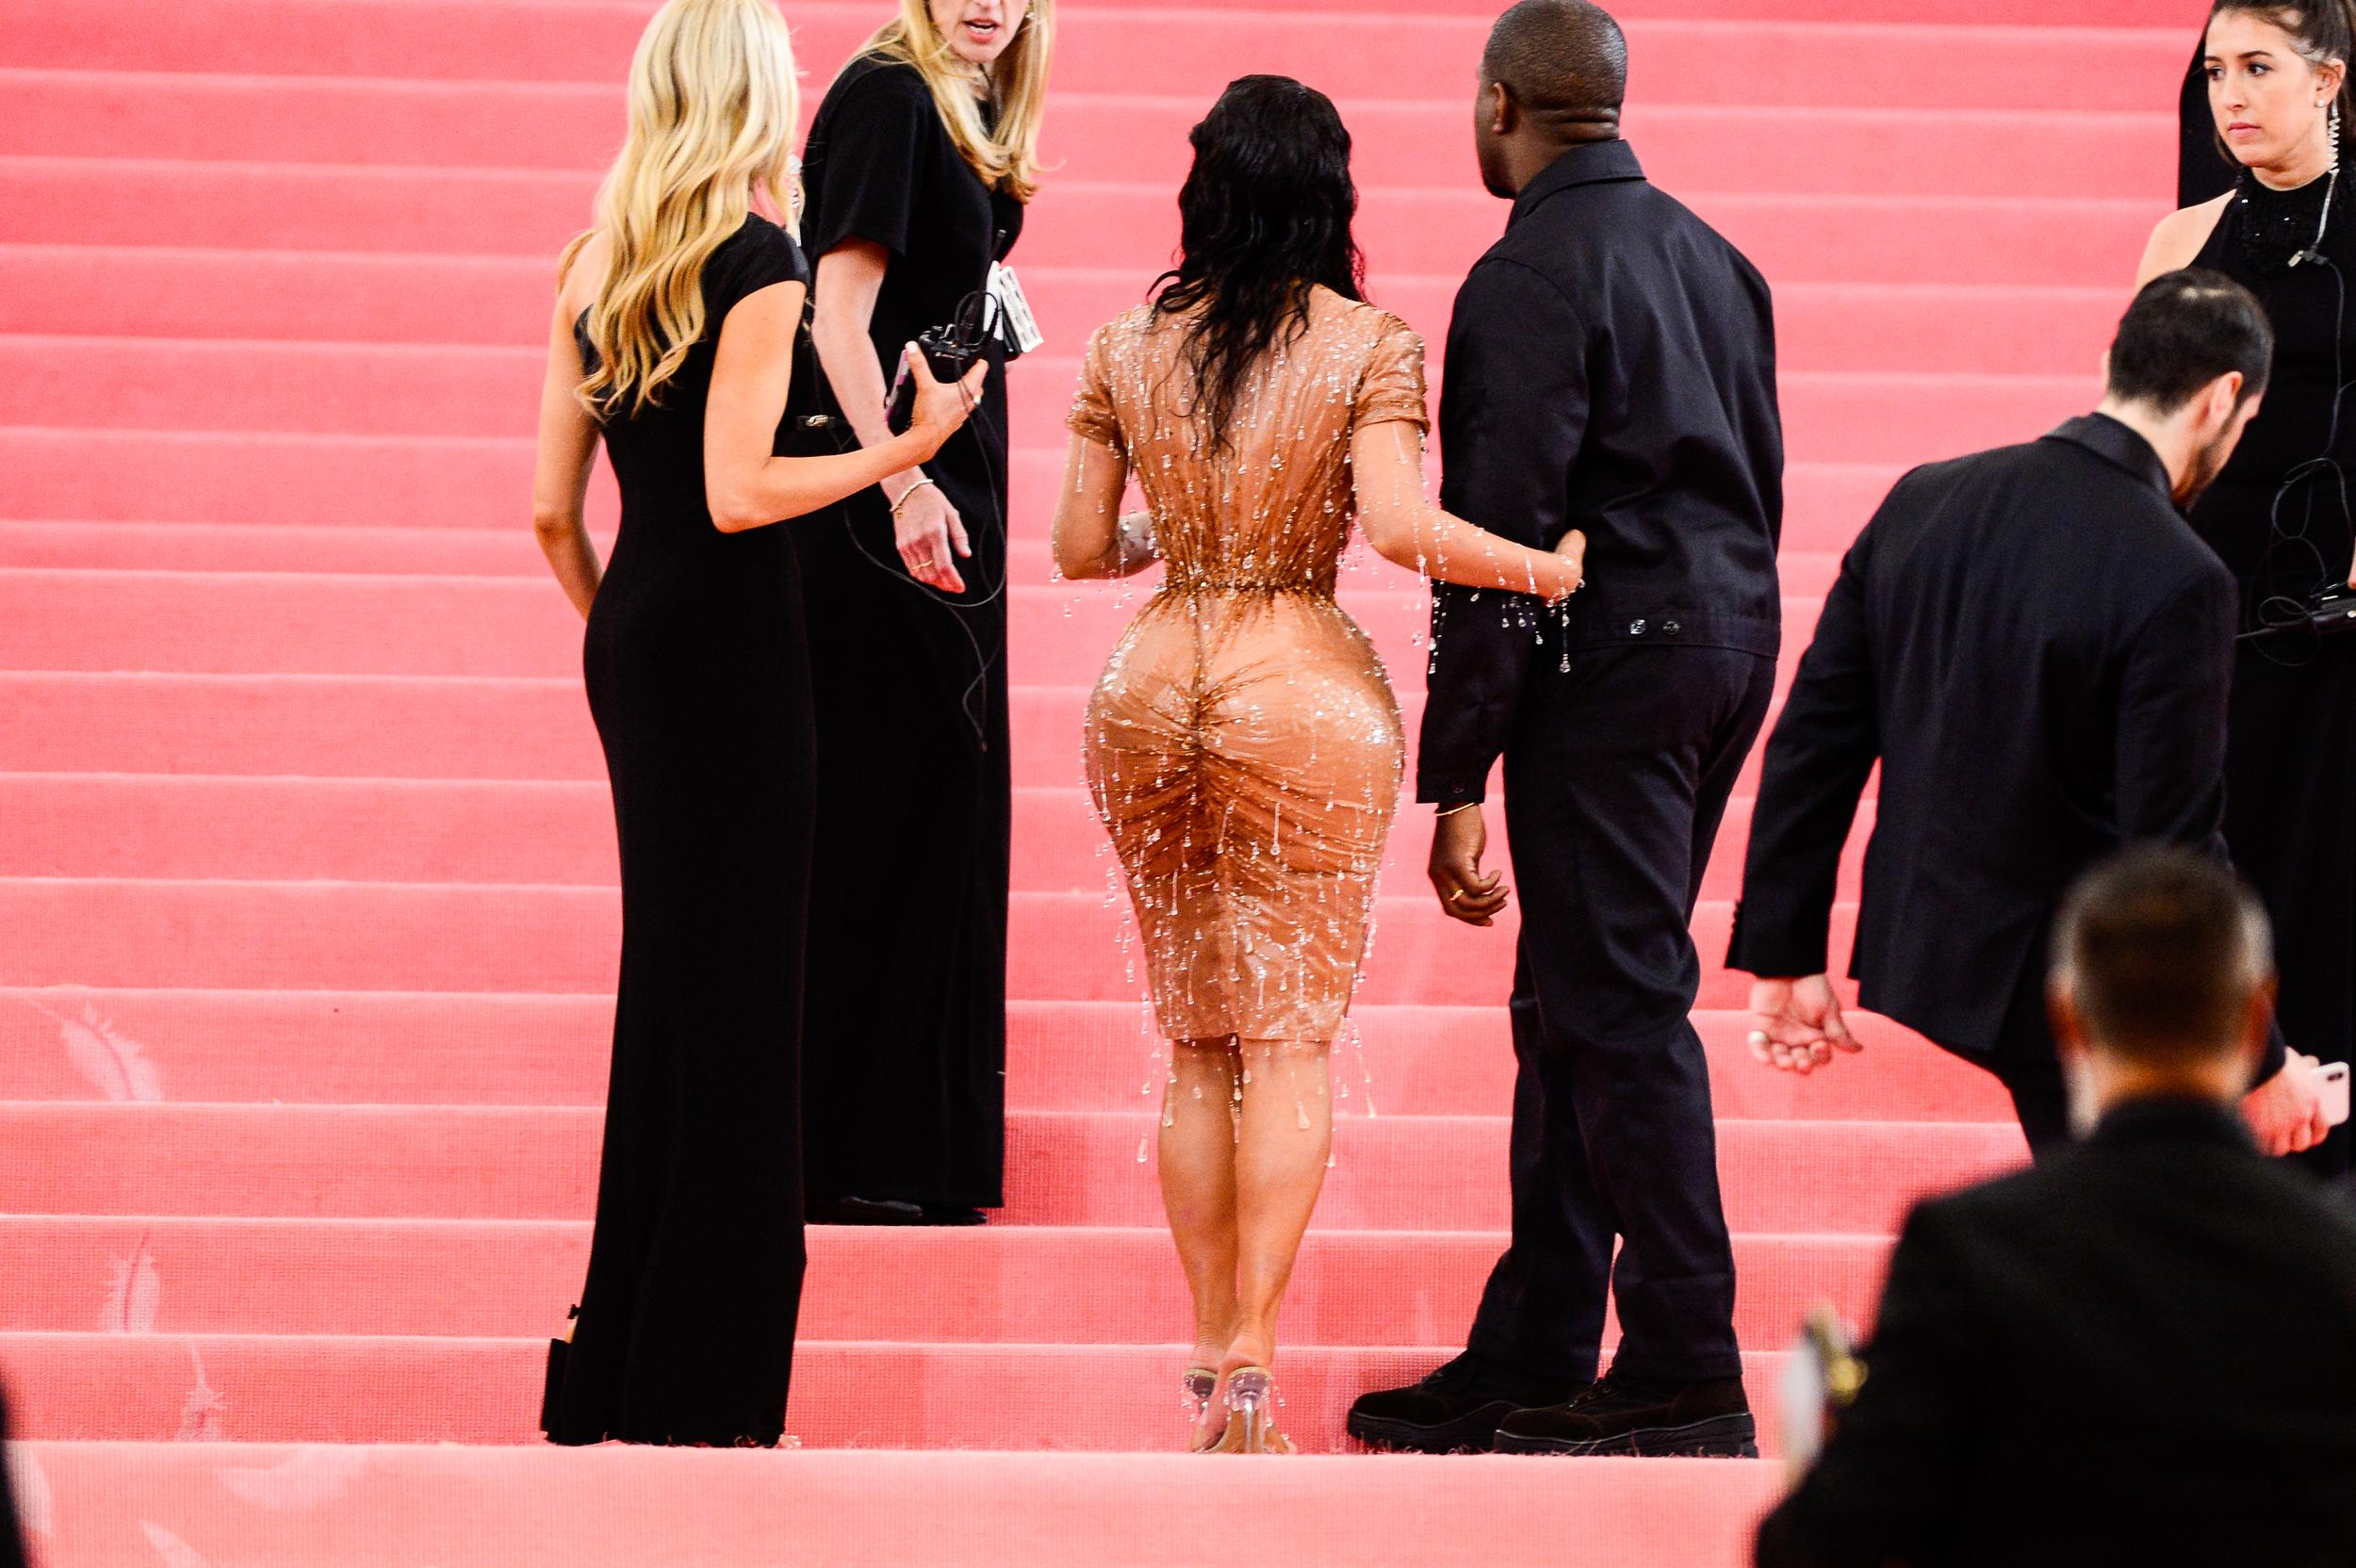 NEW YORK, NY - MAY 06:  Media personality Kim Kardashian (L) and musician Kanye West attend The 2019 Met Gala Celebrating Camp: Notes on Fashion at Metropolitan Museum of Art on May 6, 2019 in New York City.  (Photo by Ray Tamarra/GC Images)